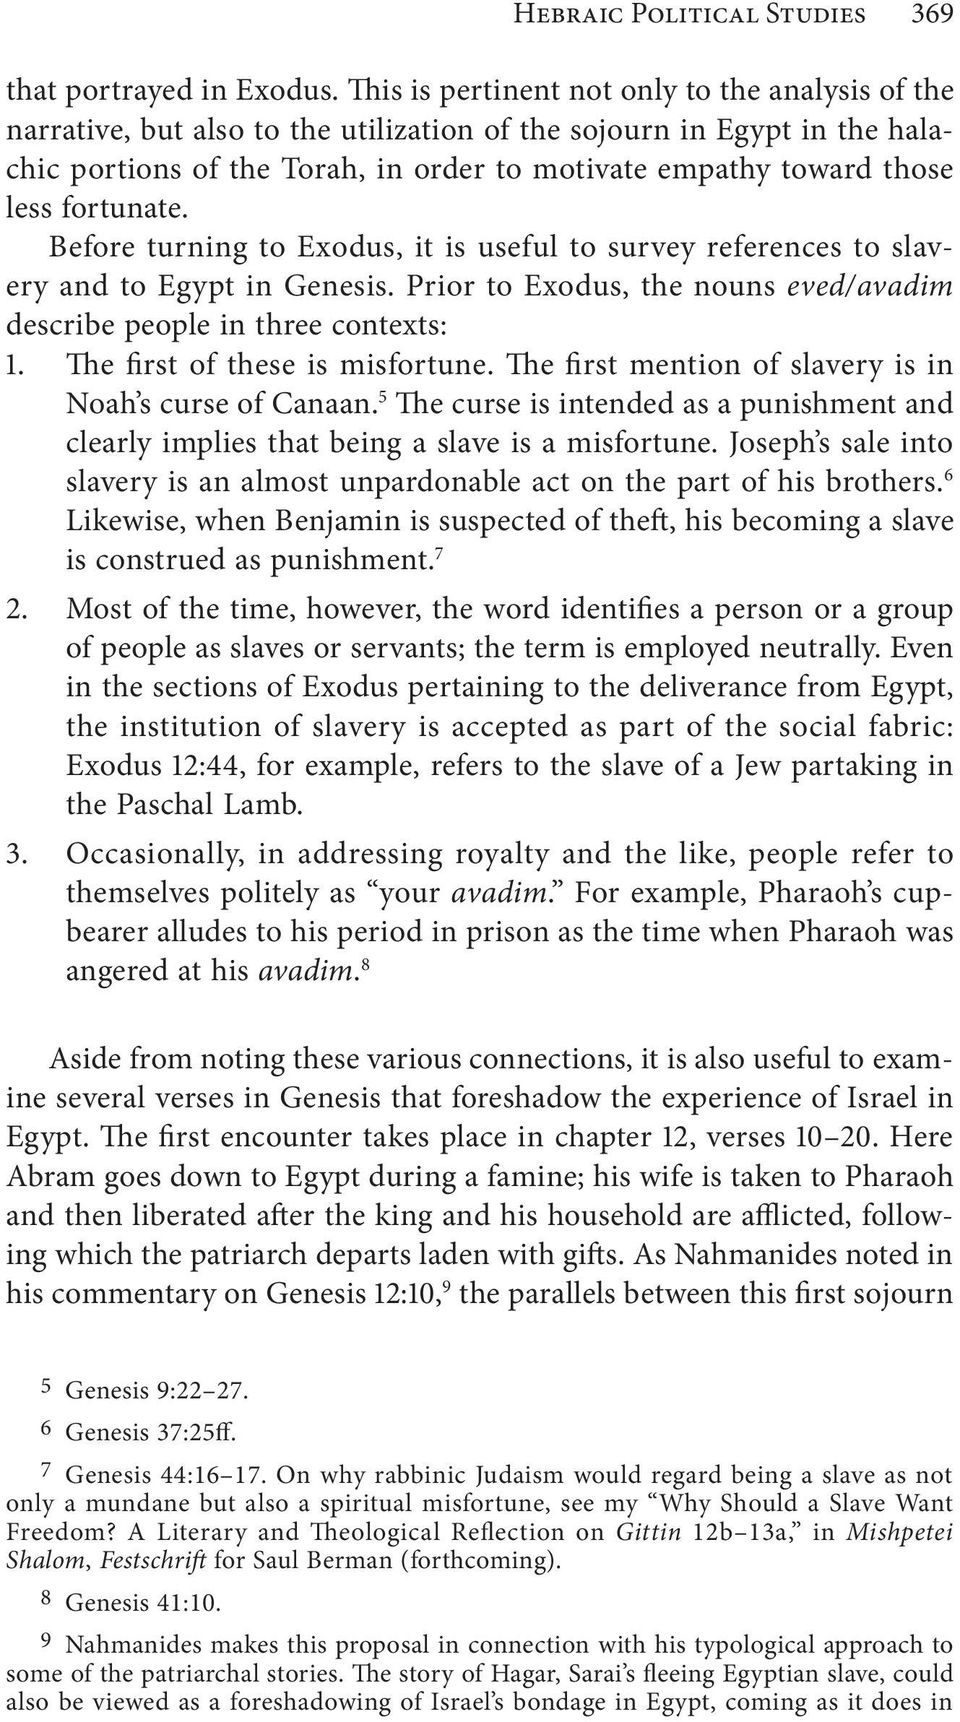 fortunate. Before turning to Exodus, it is useful to survey references to slavery and to Egypt in Genesis. Prior to Exodus, the nouns eved/avadim describe people in three contexts: 1.